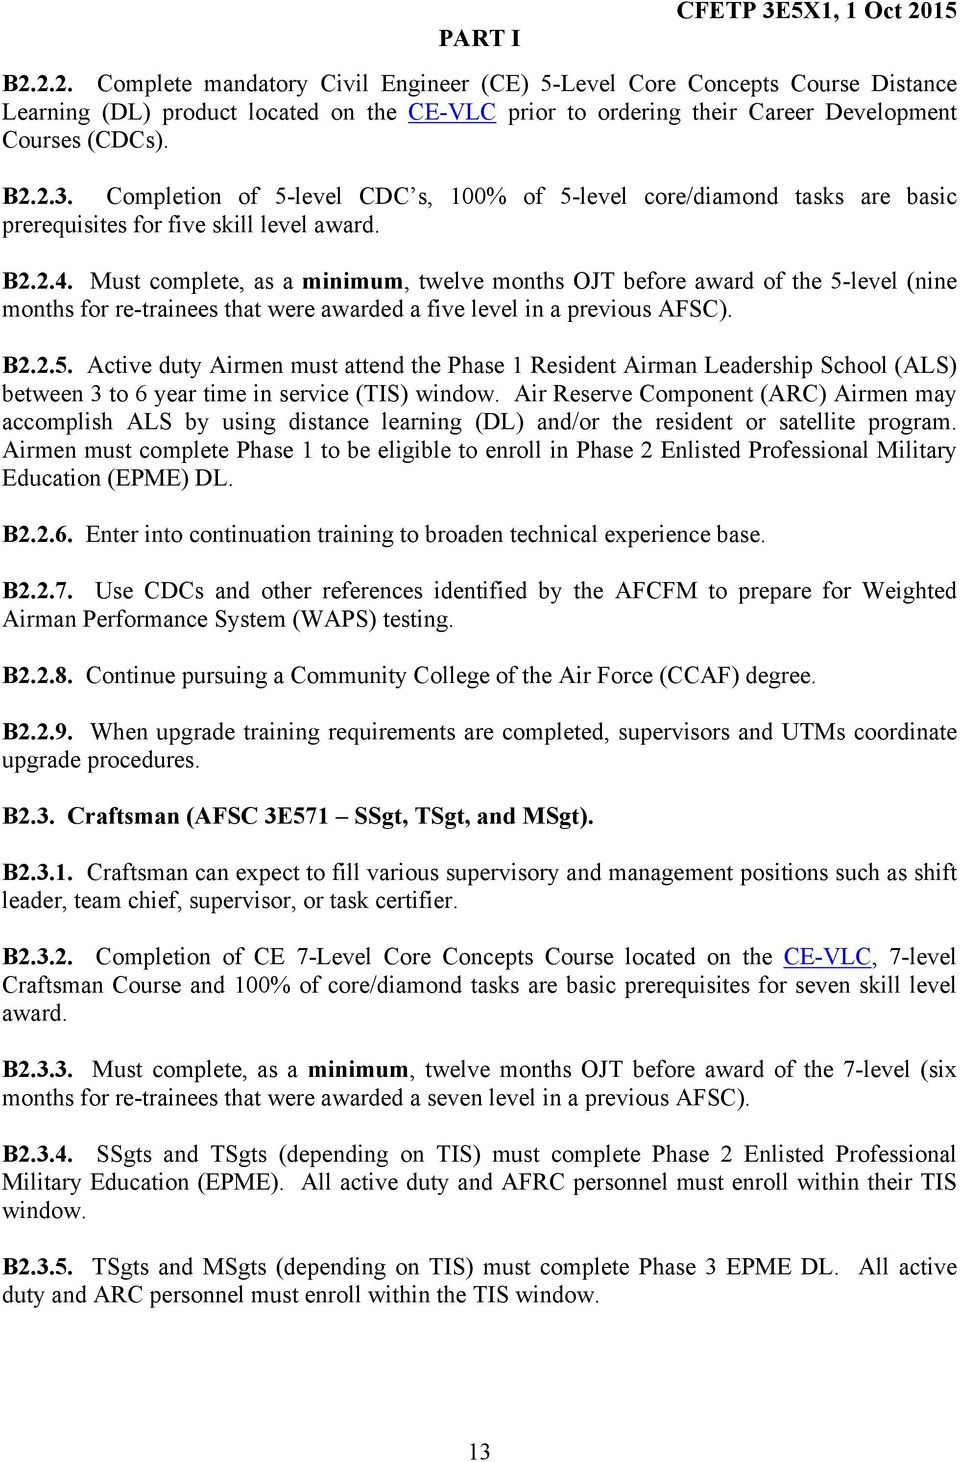 department of the air force air force specialty code afsc 3e5x1 must complete as a minimum twelve months ojt before award of the 5